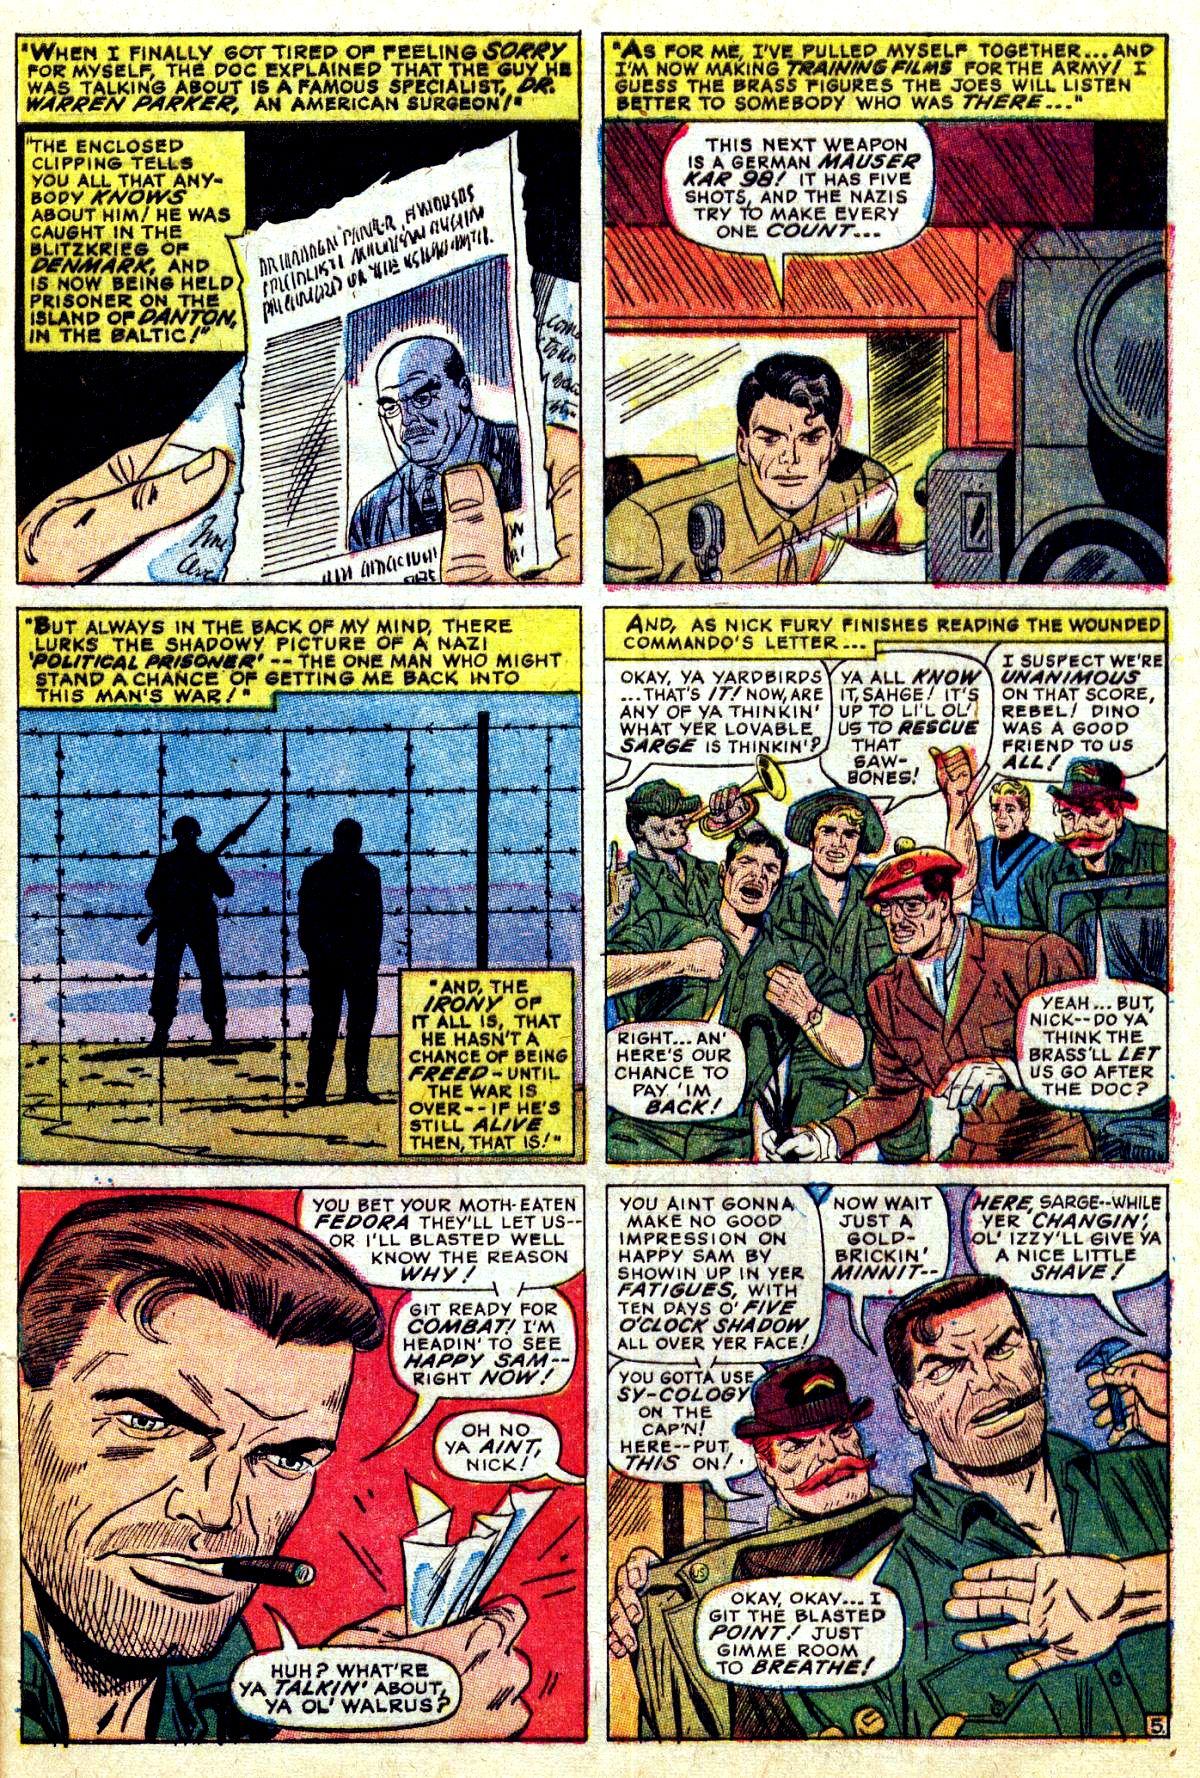 Read online Sgt. Fury comic -  Issue #38 - 9